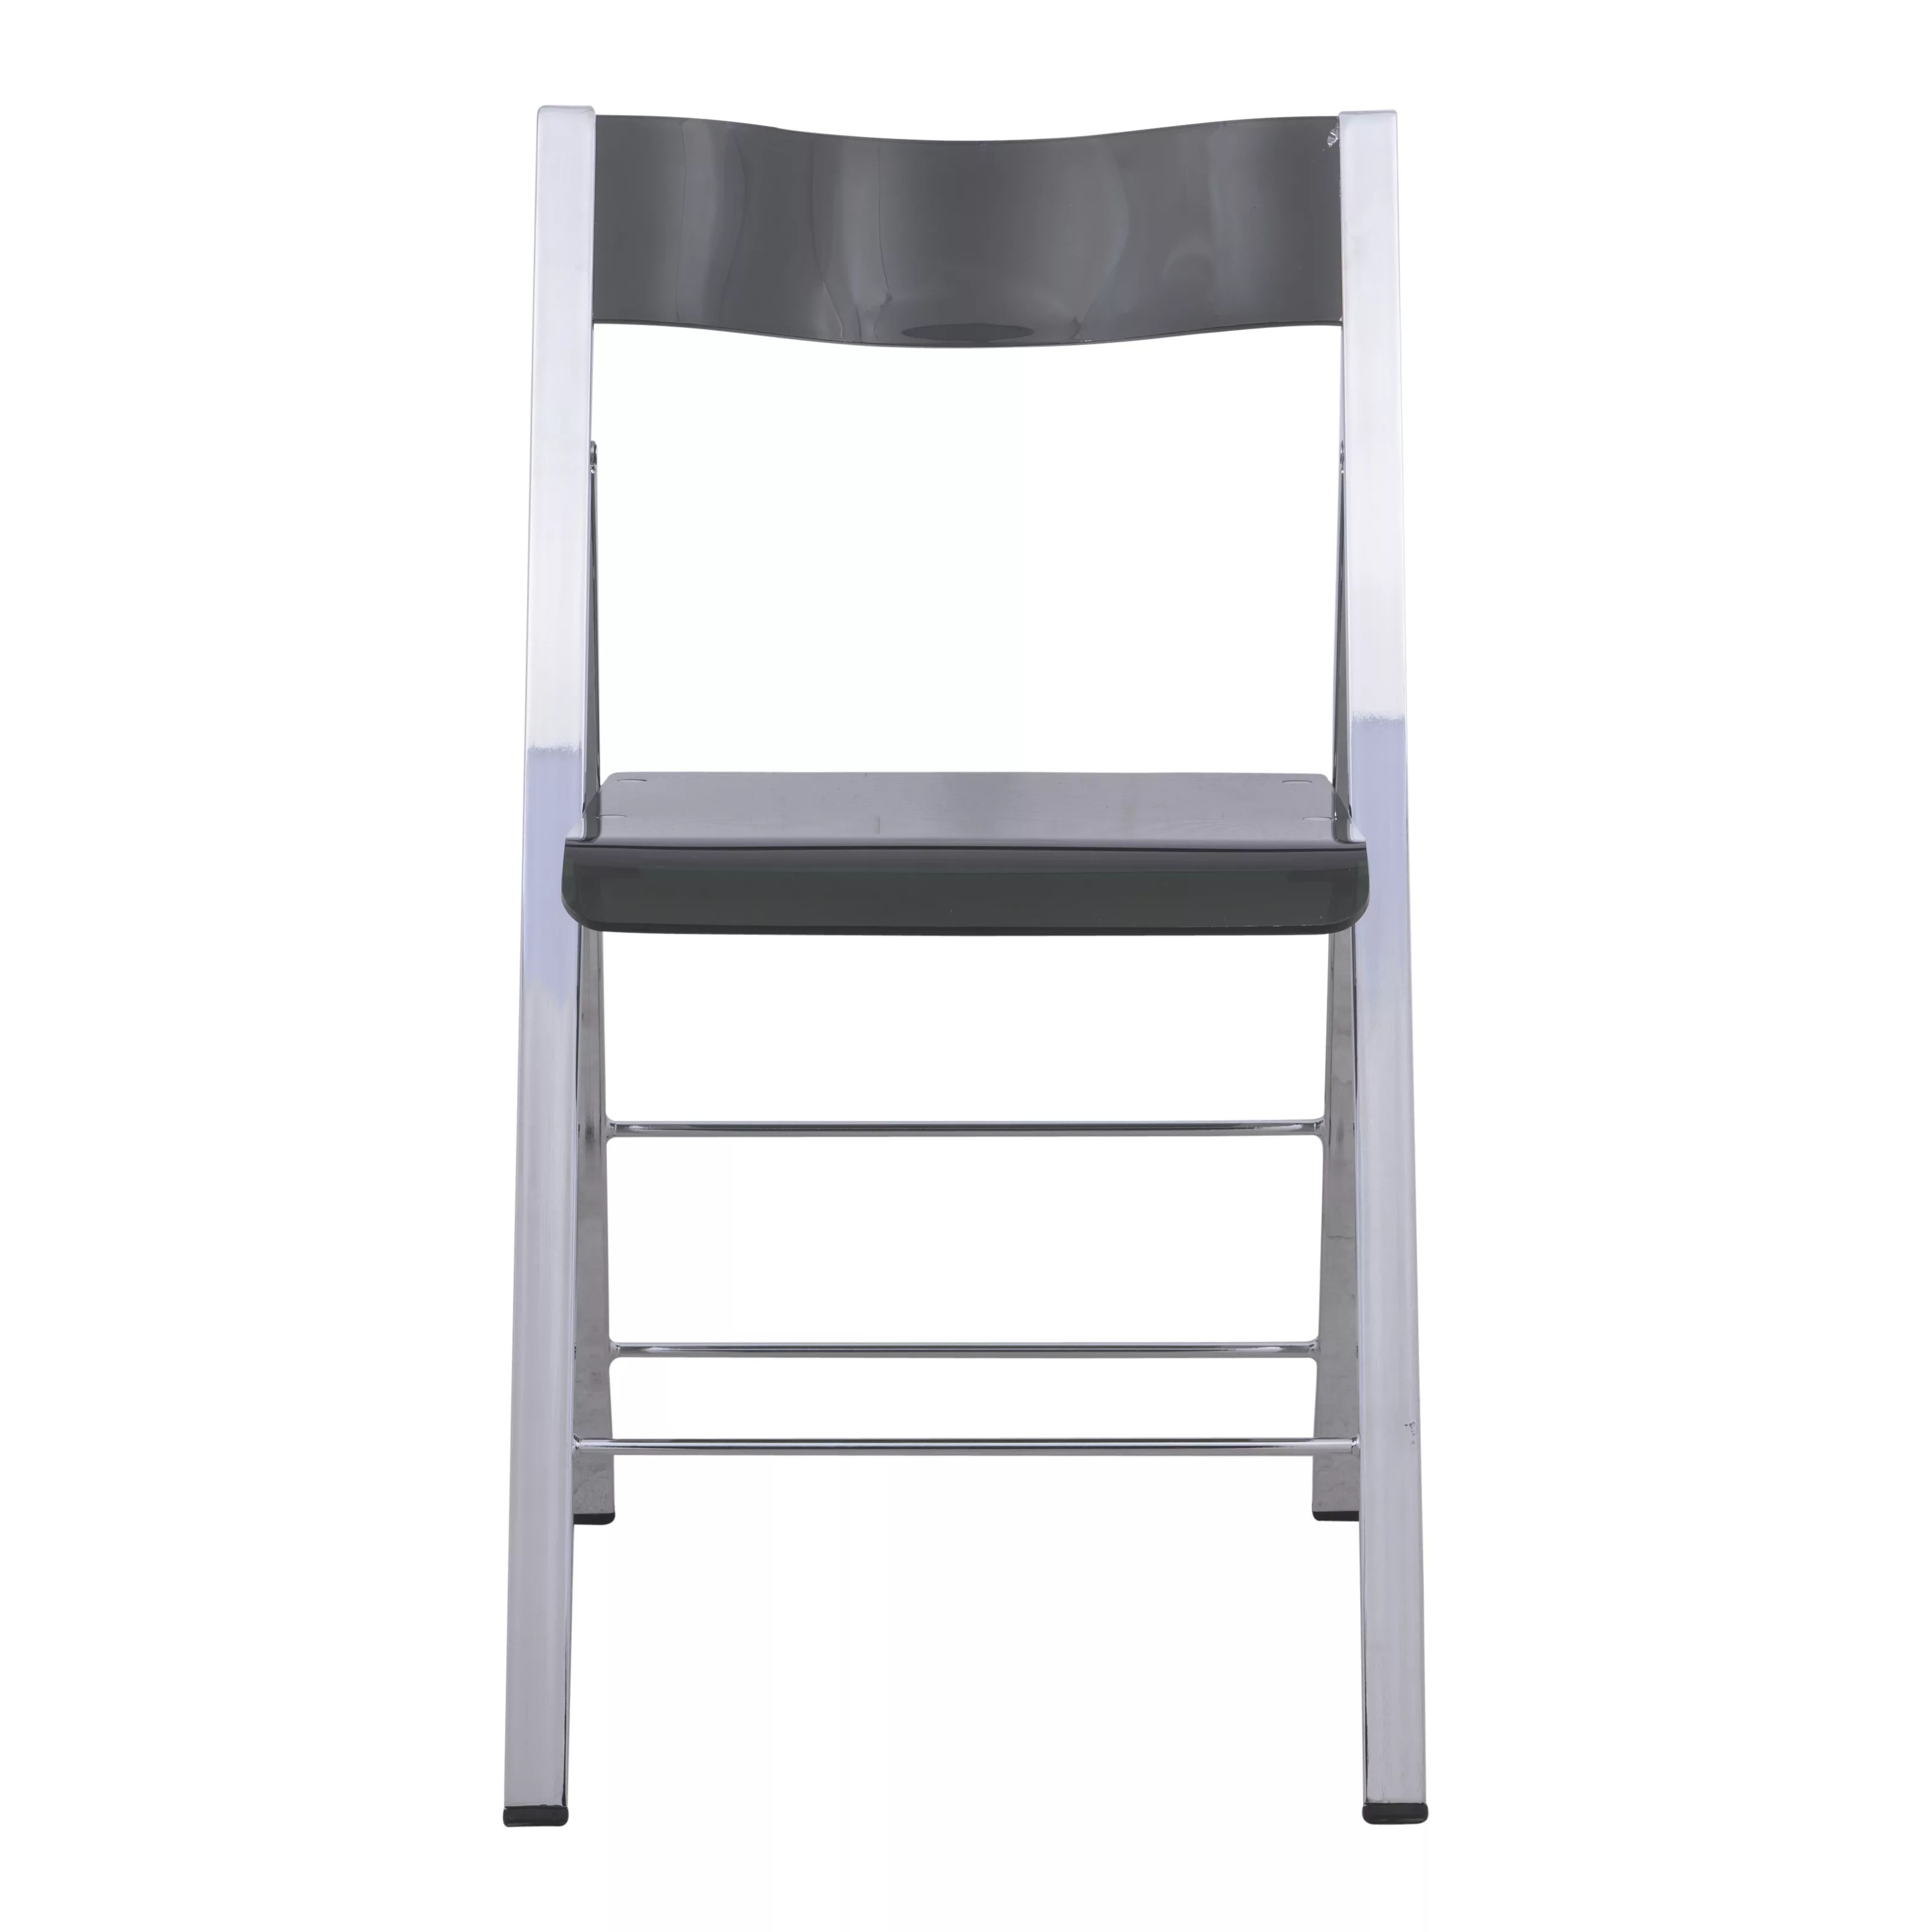 Home / Shop / Table U0026 Chair Sets Under $400 / Lucite Folding Chairs Set Of 2